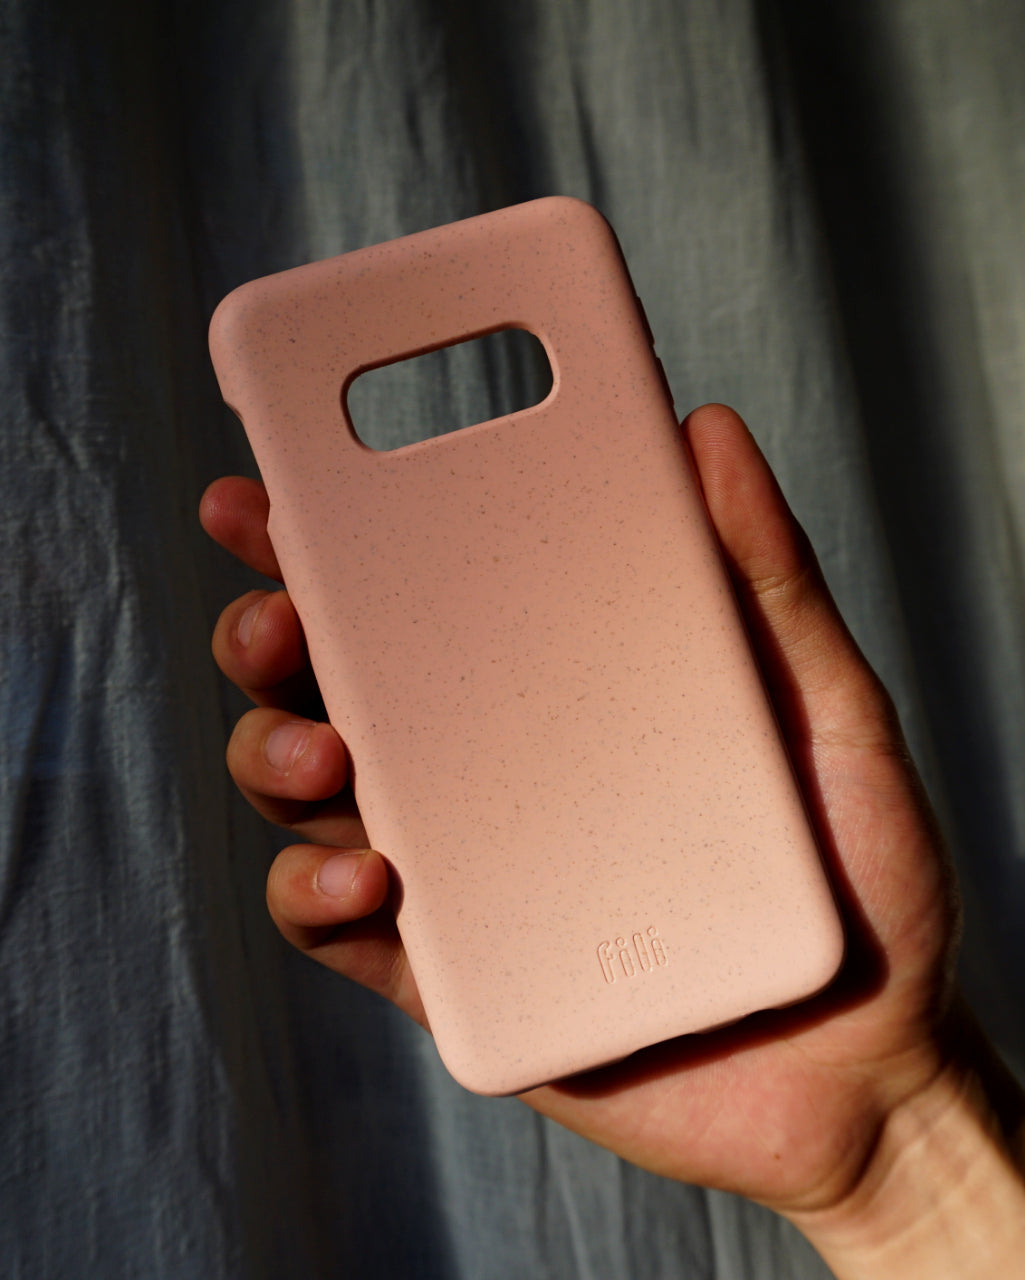 Fili Eco-Friendly Samsung Galaxy S10e Case - Fili